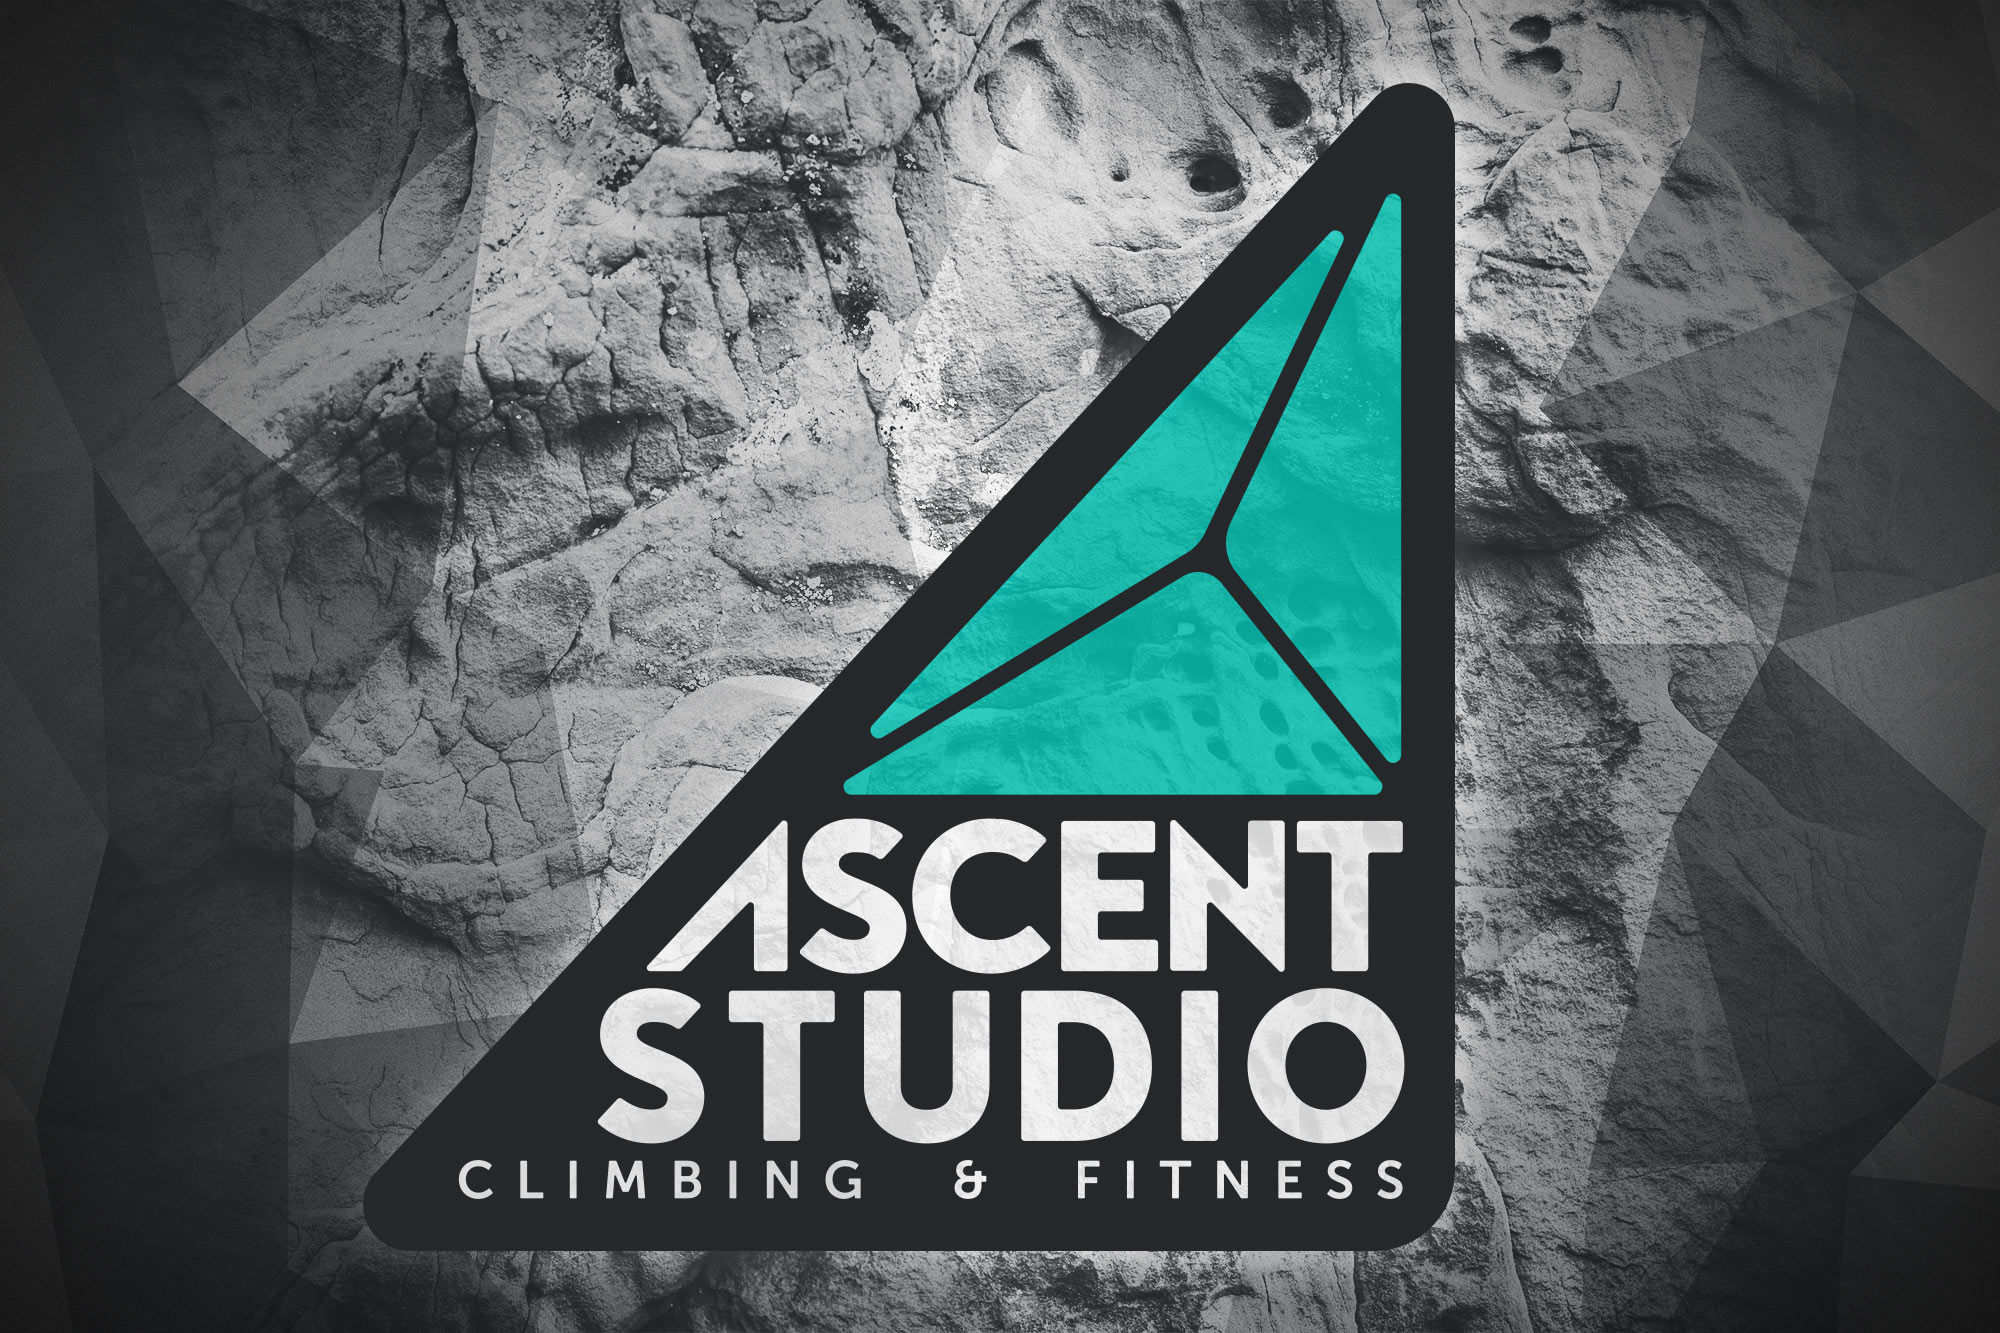 ascent_studio-1